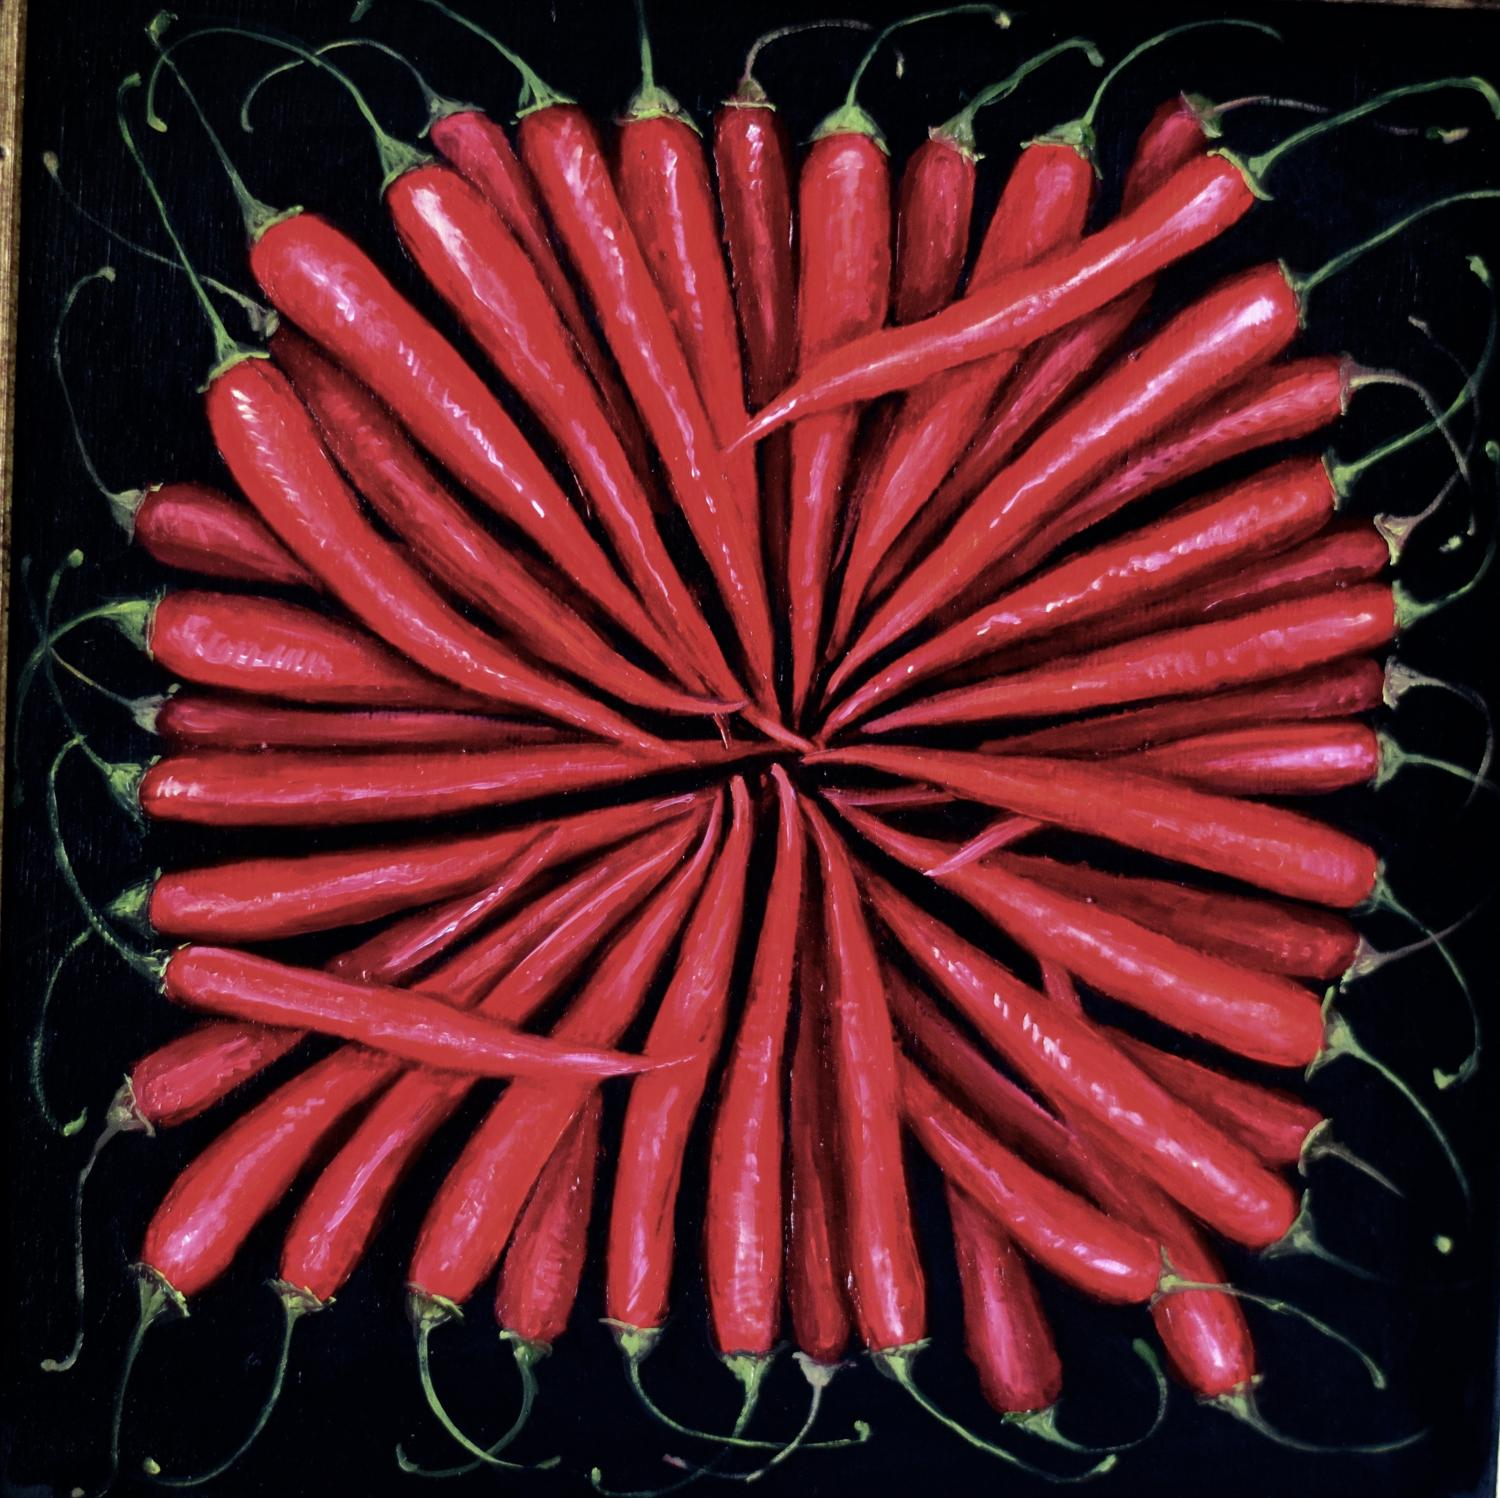 Chillis in a circle